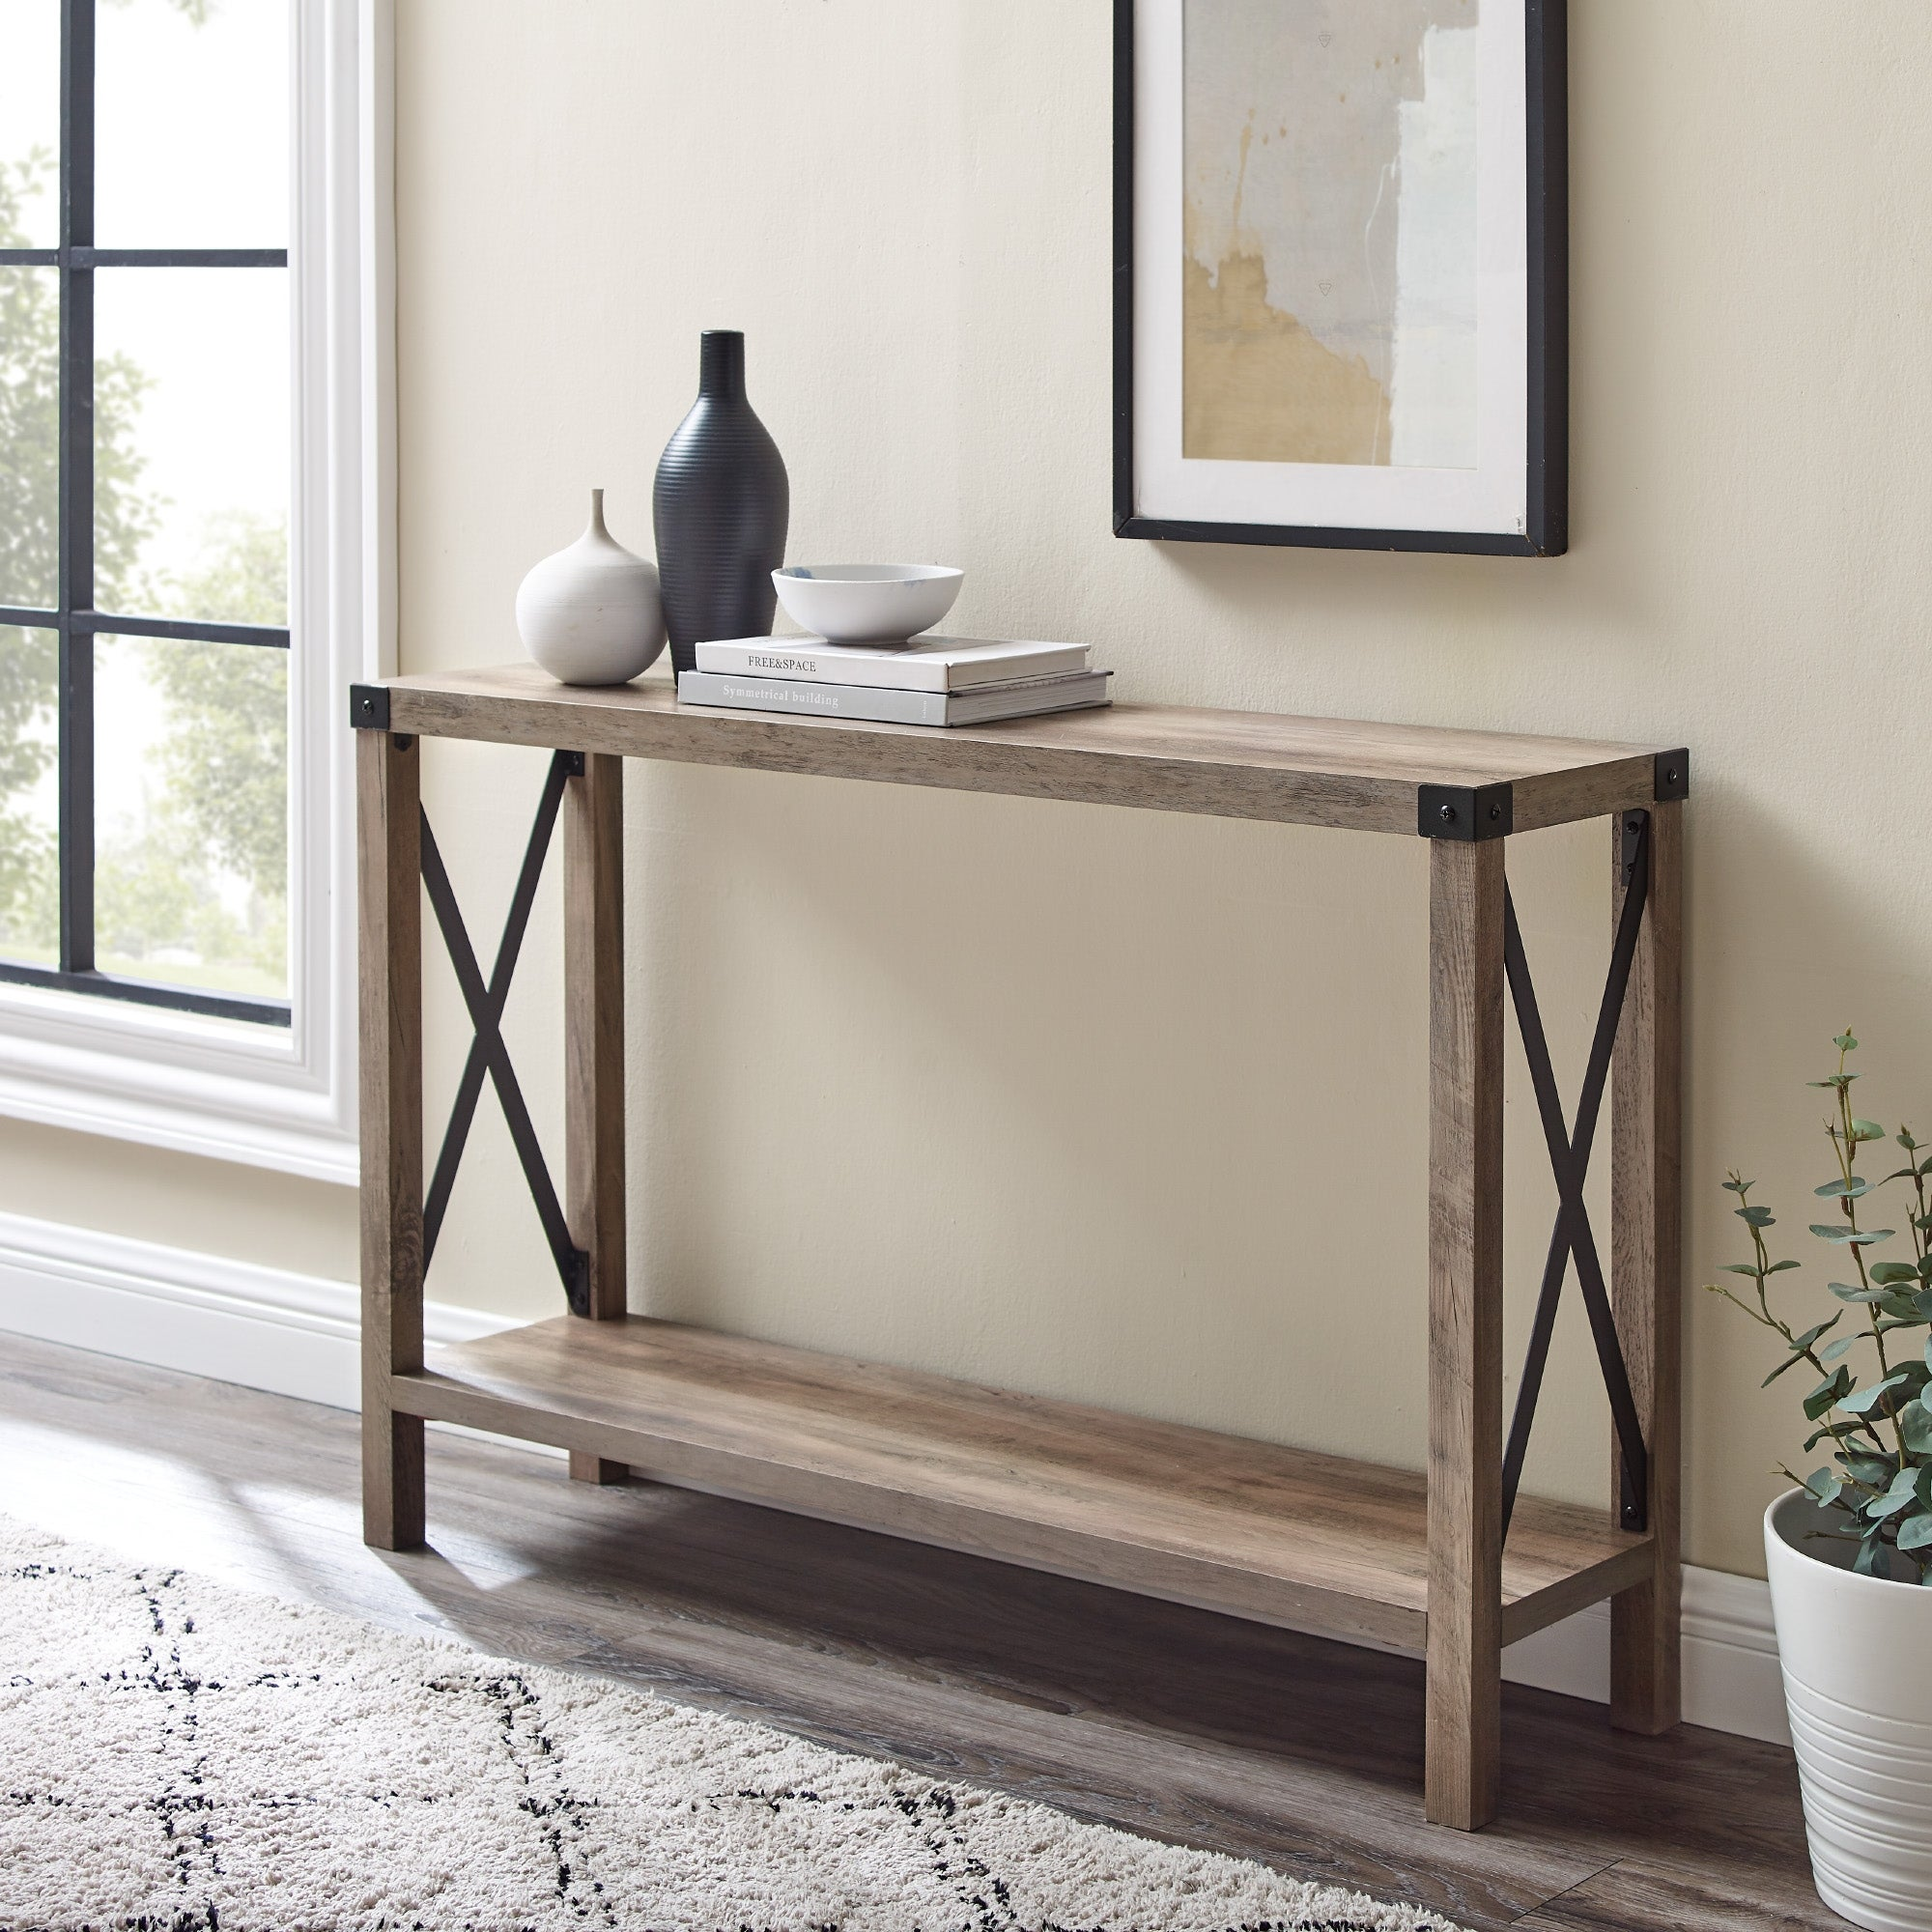 The Gray Barn 46 Inch Kujawa X Frame Entry Table On Sale Overstock 22831104